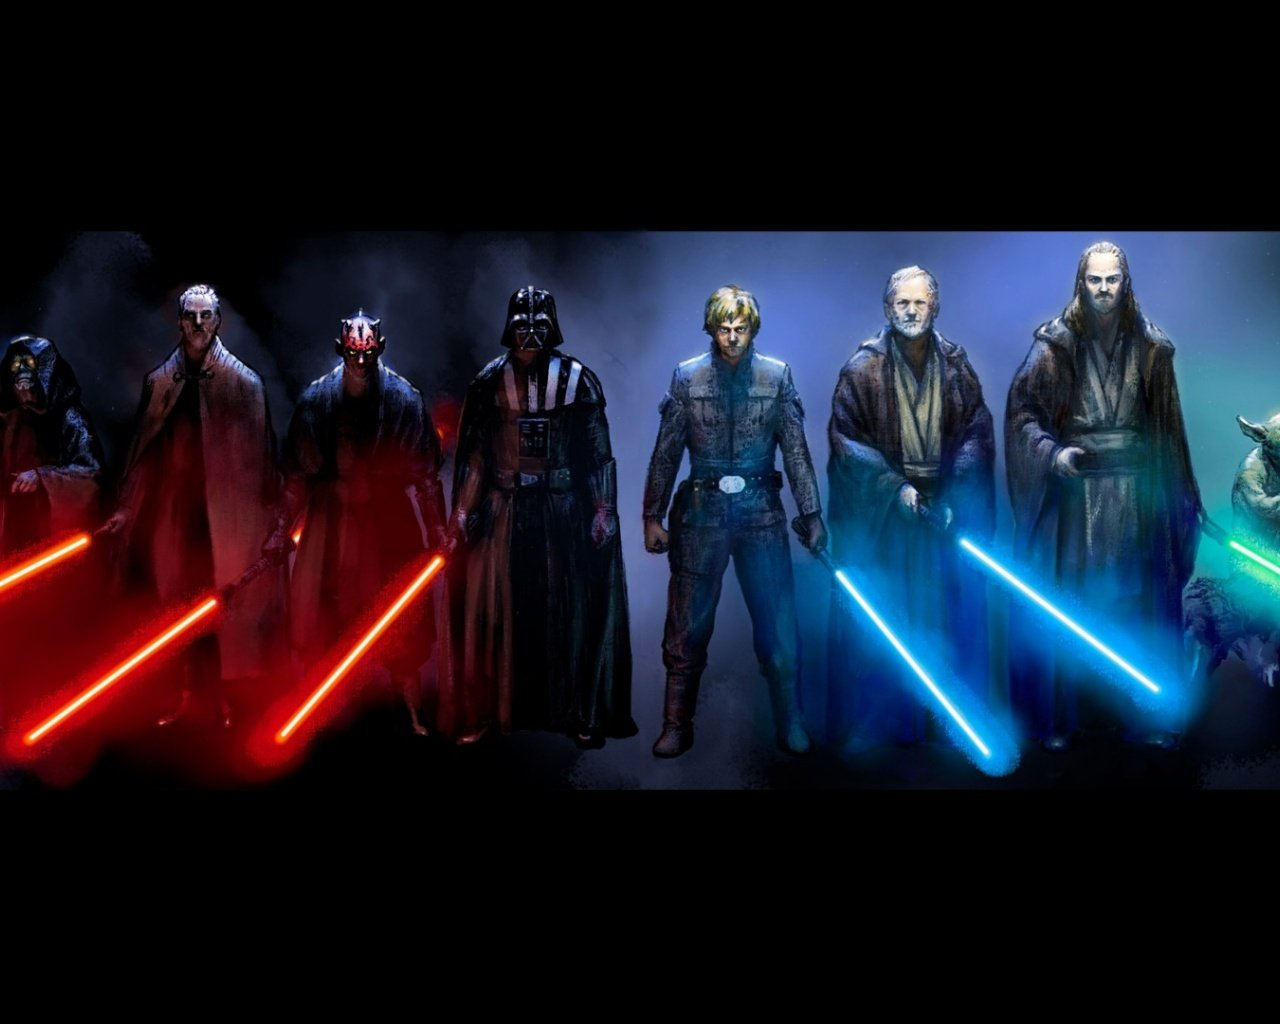 Back Gallery For star wars wallpapers and screensavers 1280x1024